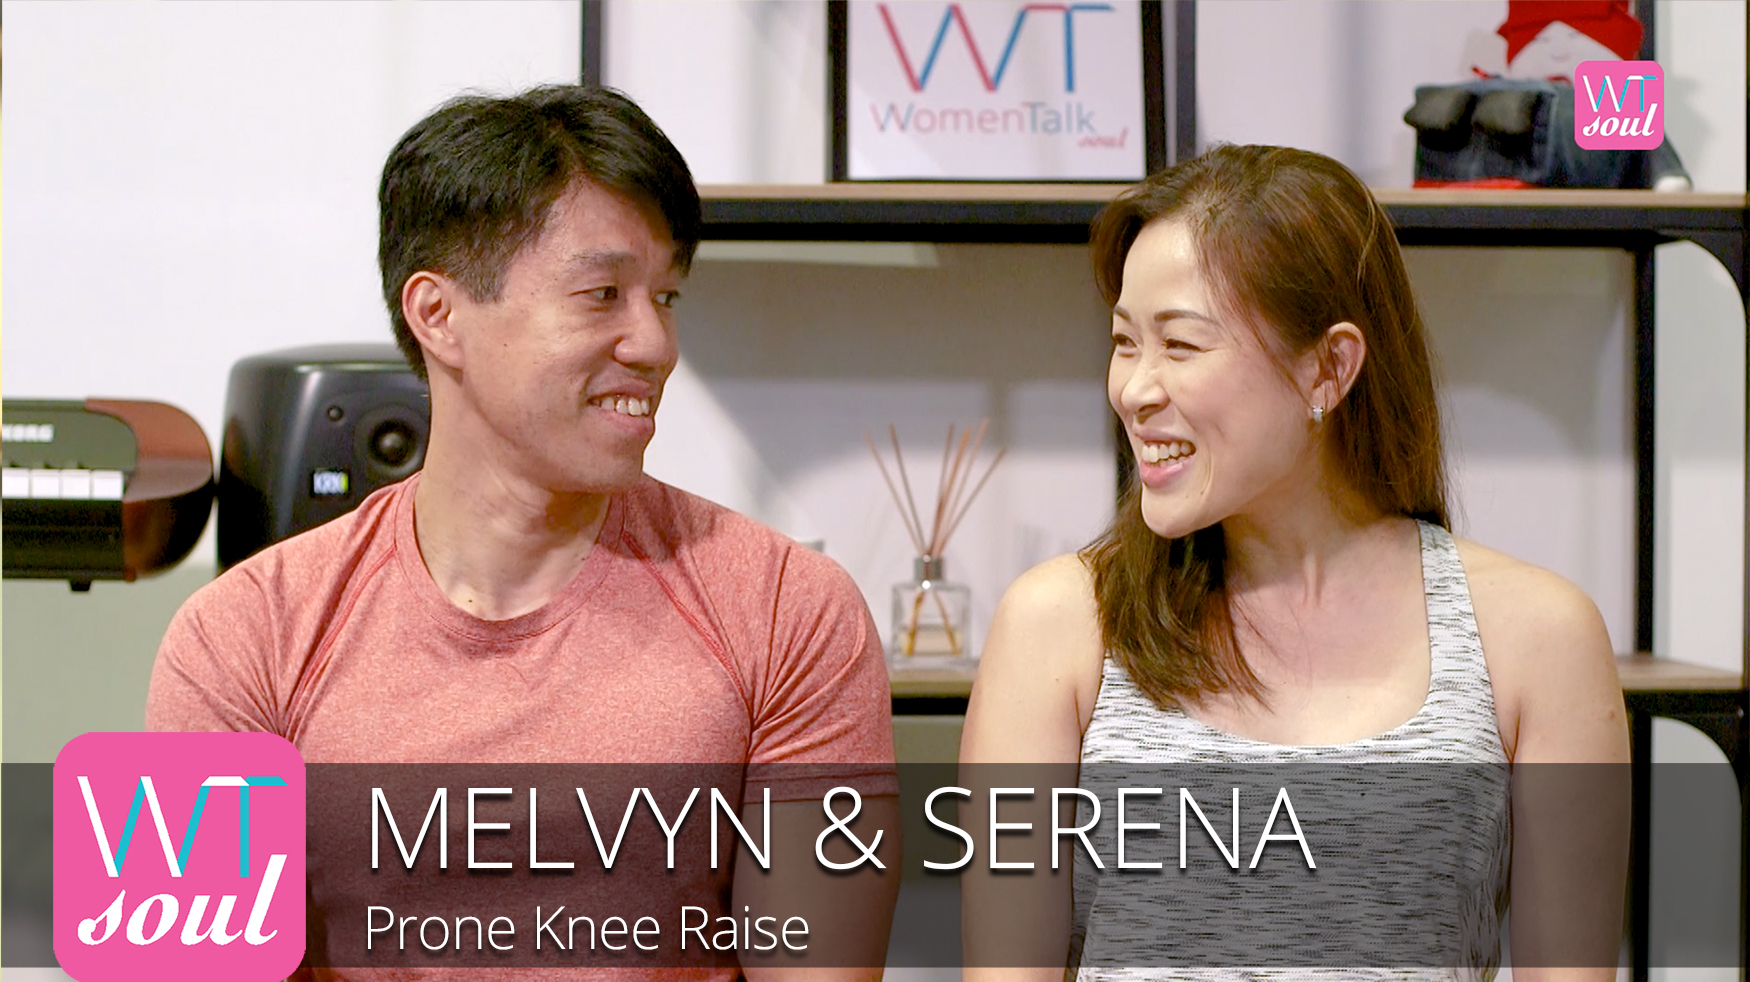 Melvyn Serena prone knee raise womentalk